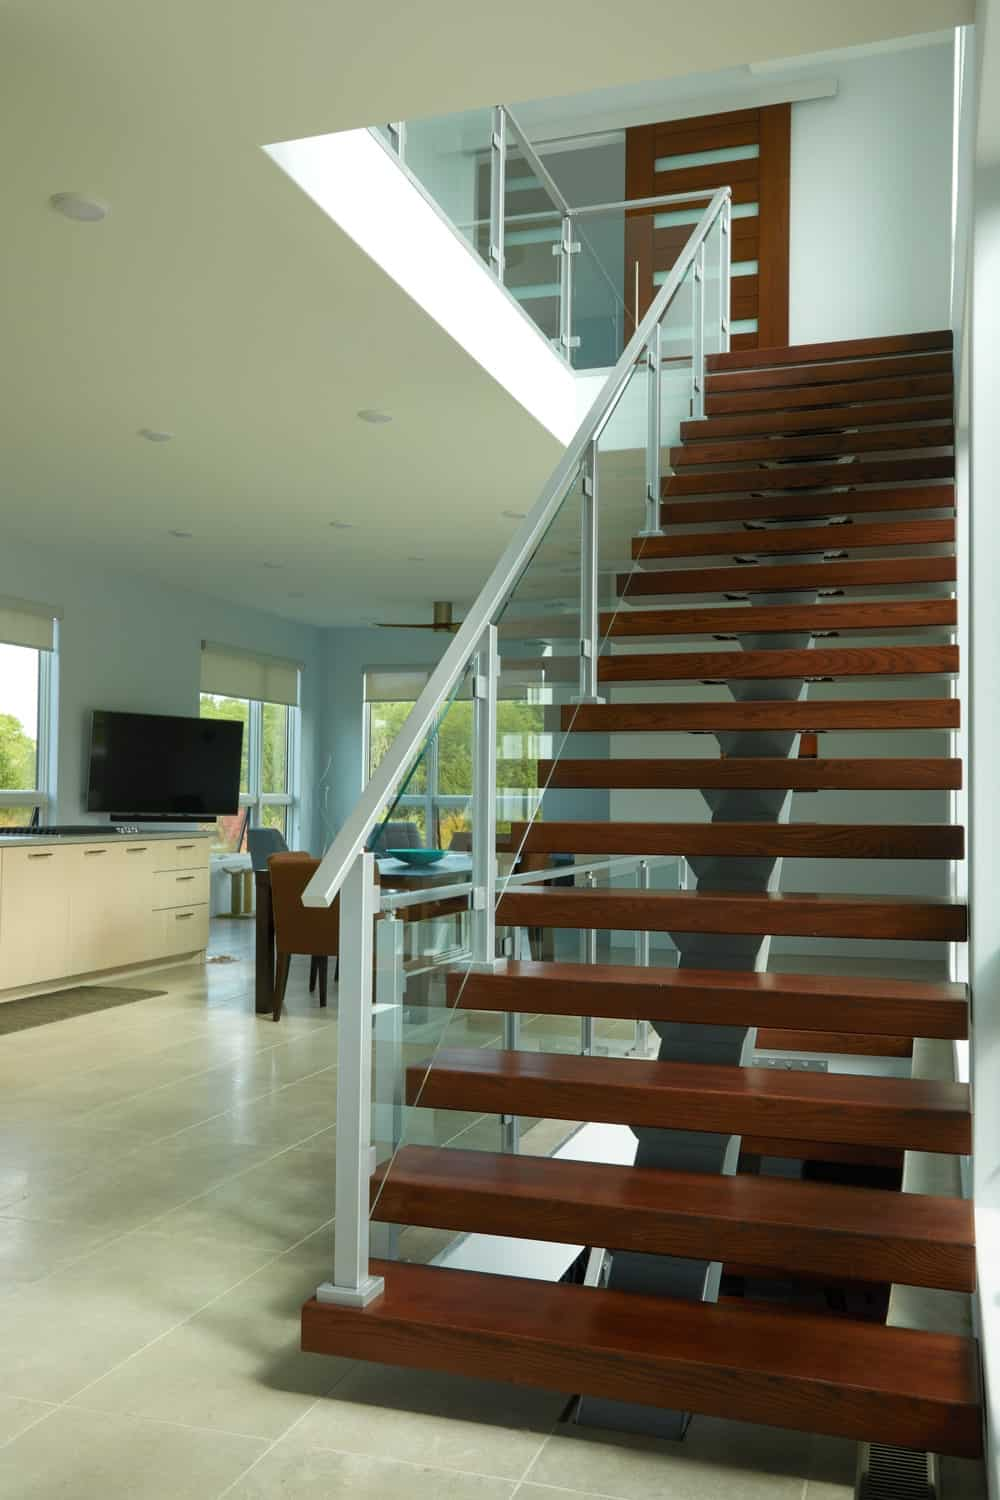 This is a closer look at the banisters of the staircase that also has a modern touch to it.